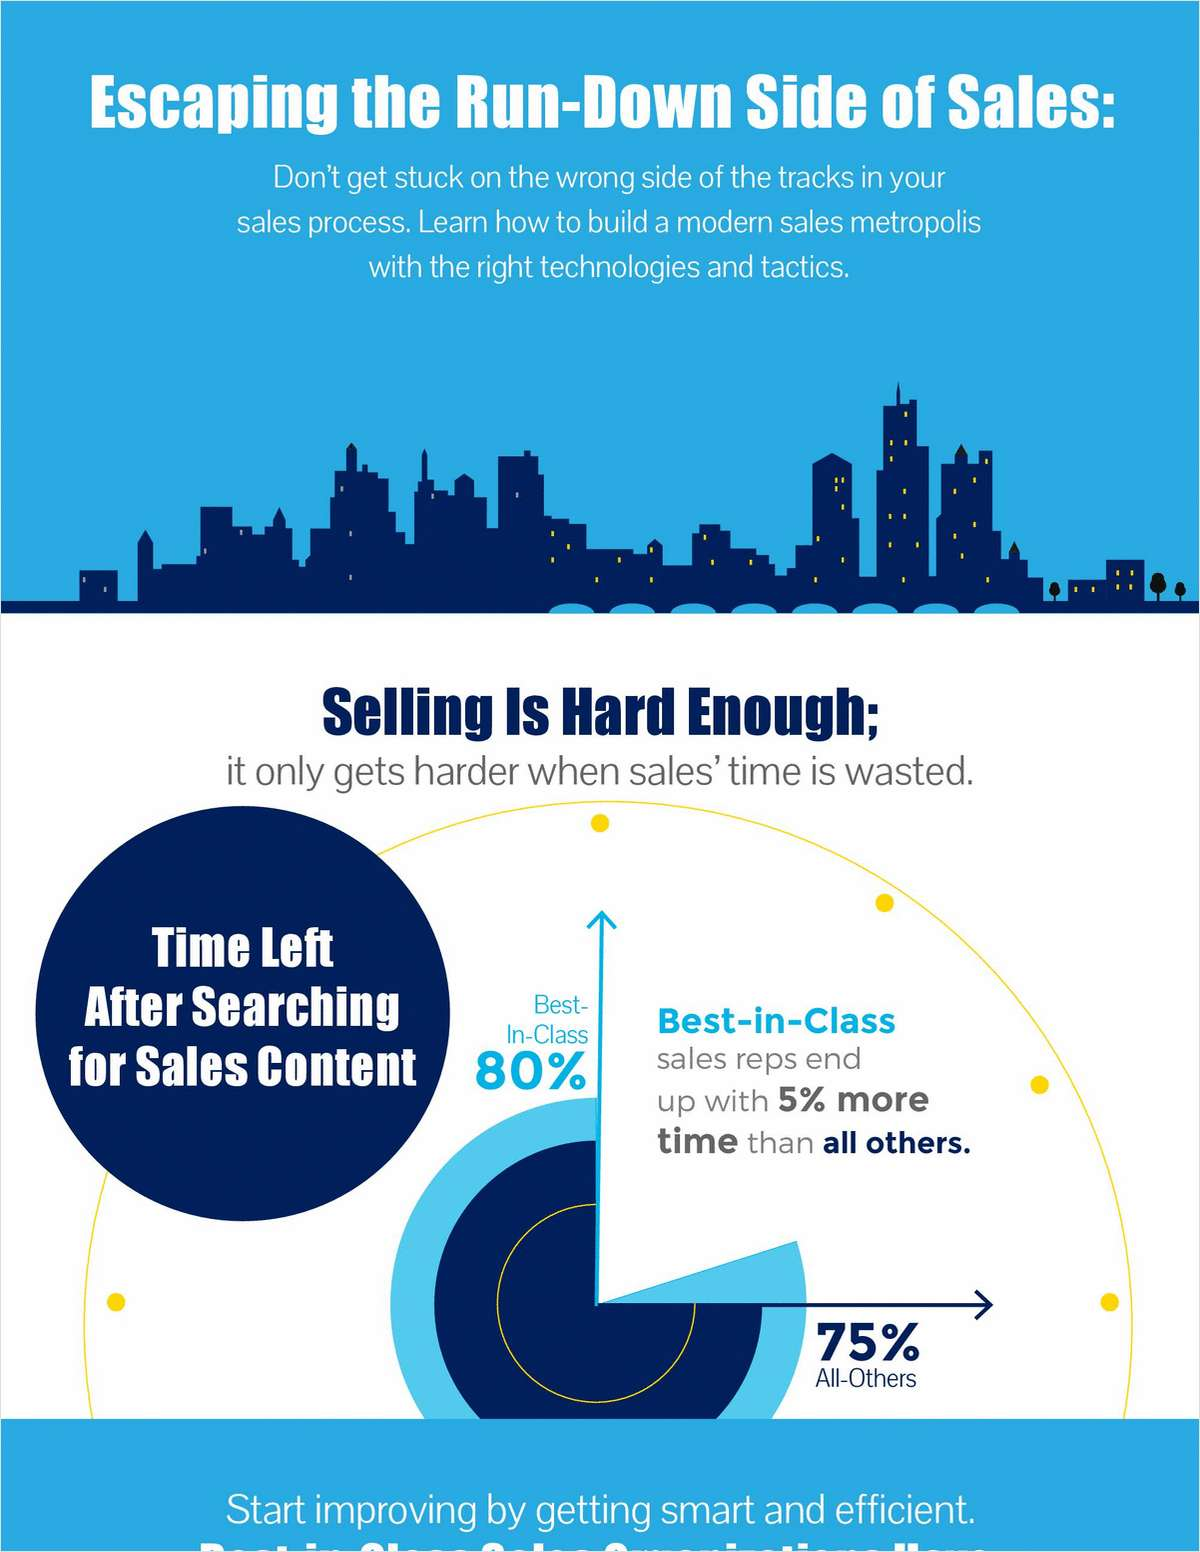 Escaping the Run-Down Side of Sales